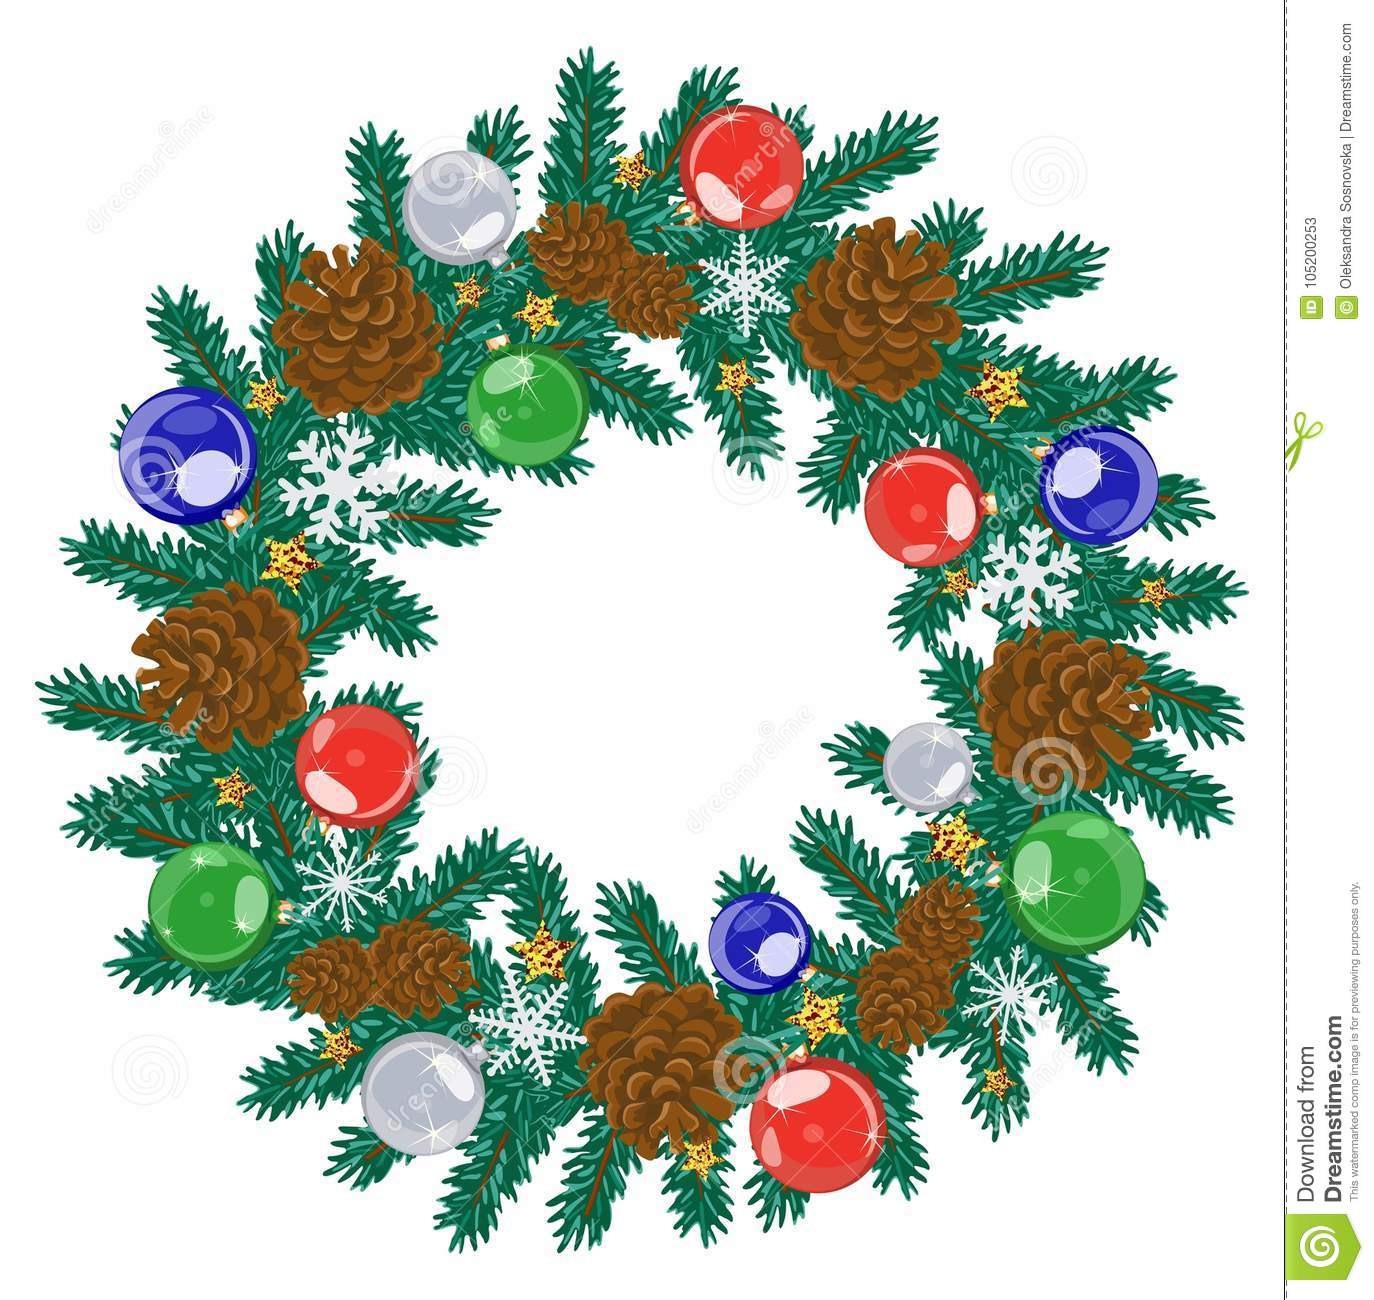 Cartoon Decorated Christmas Wreath On White Background Vector